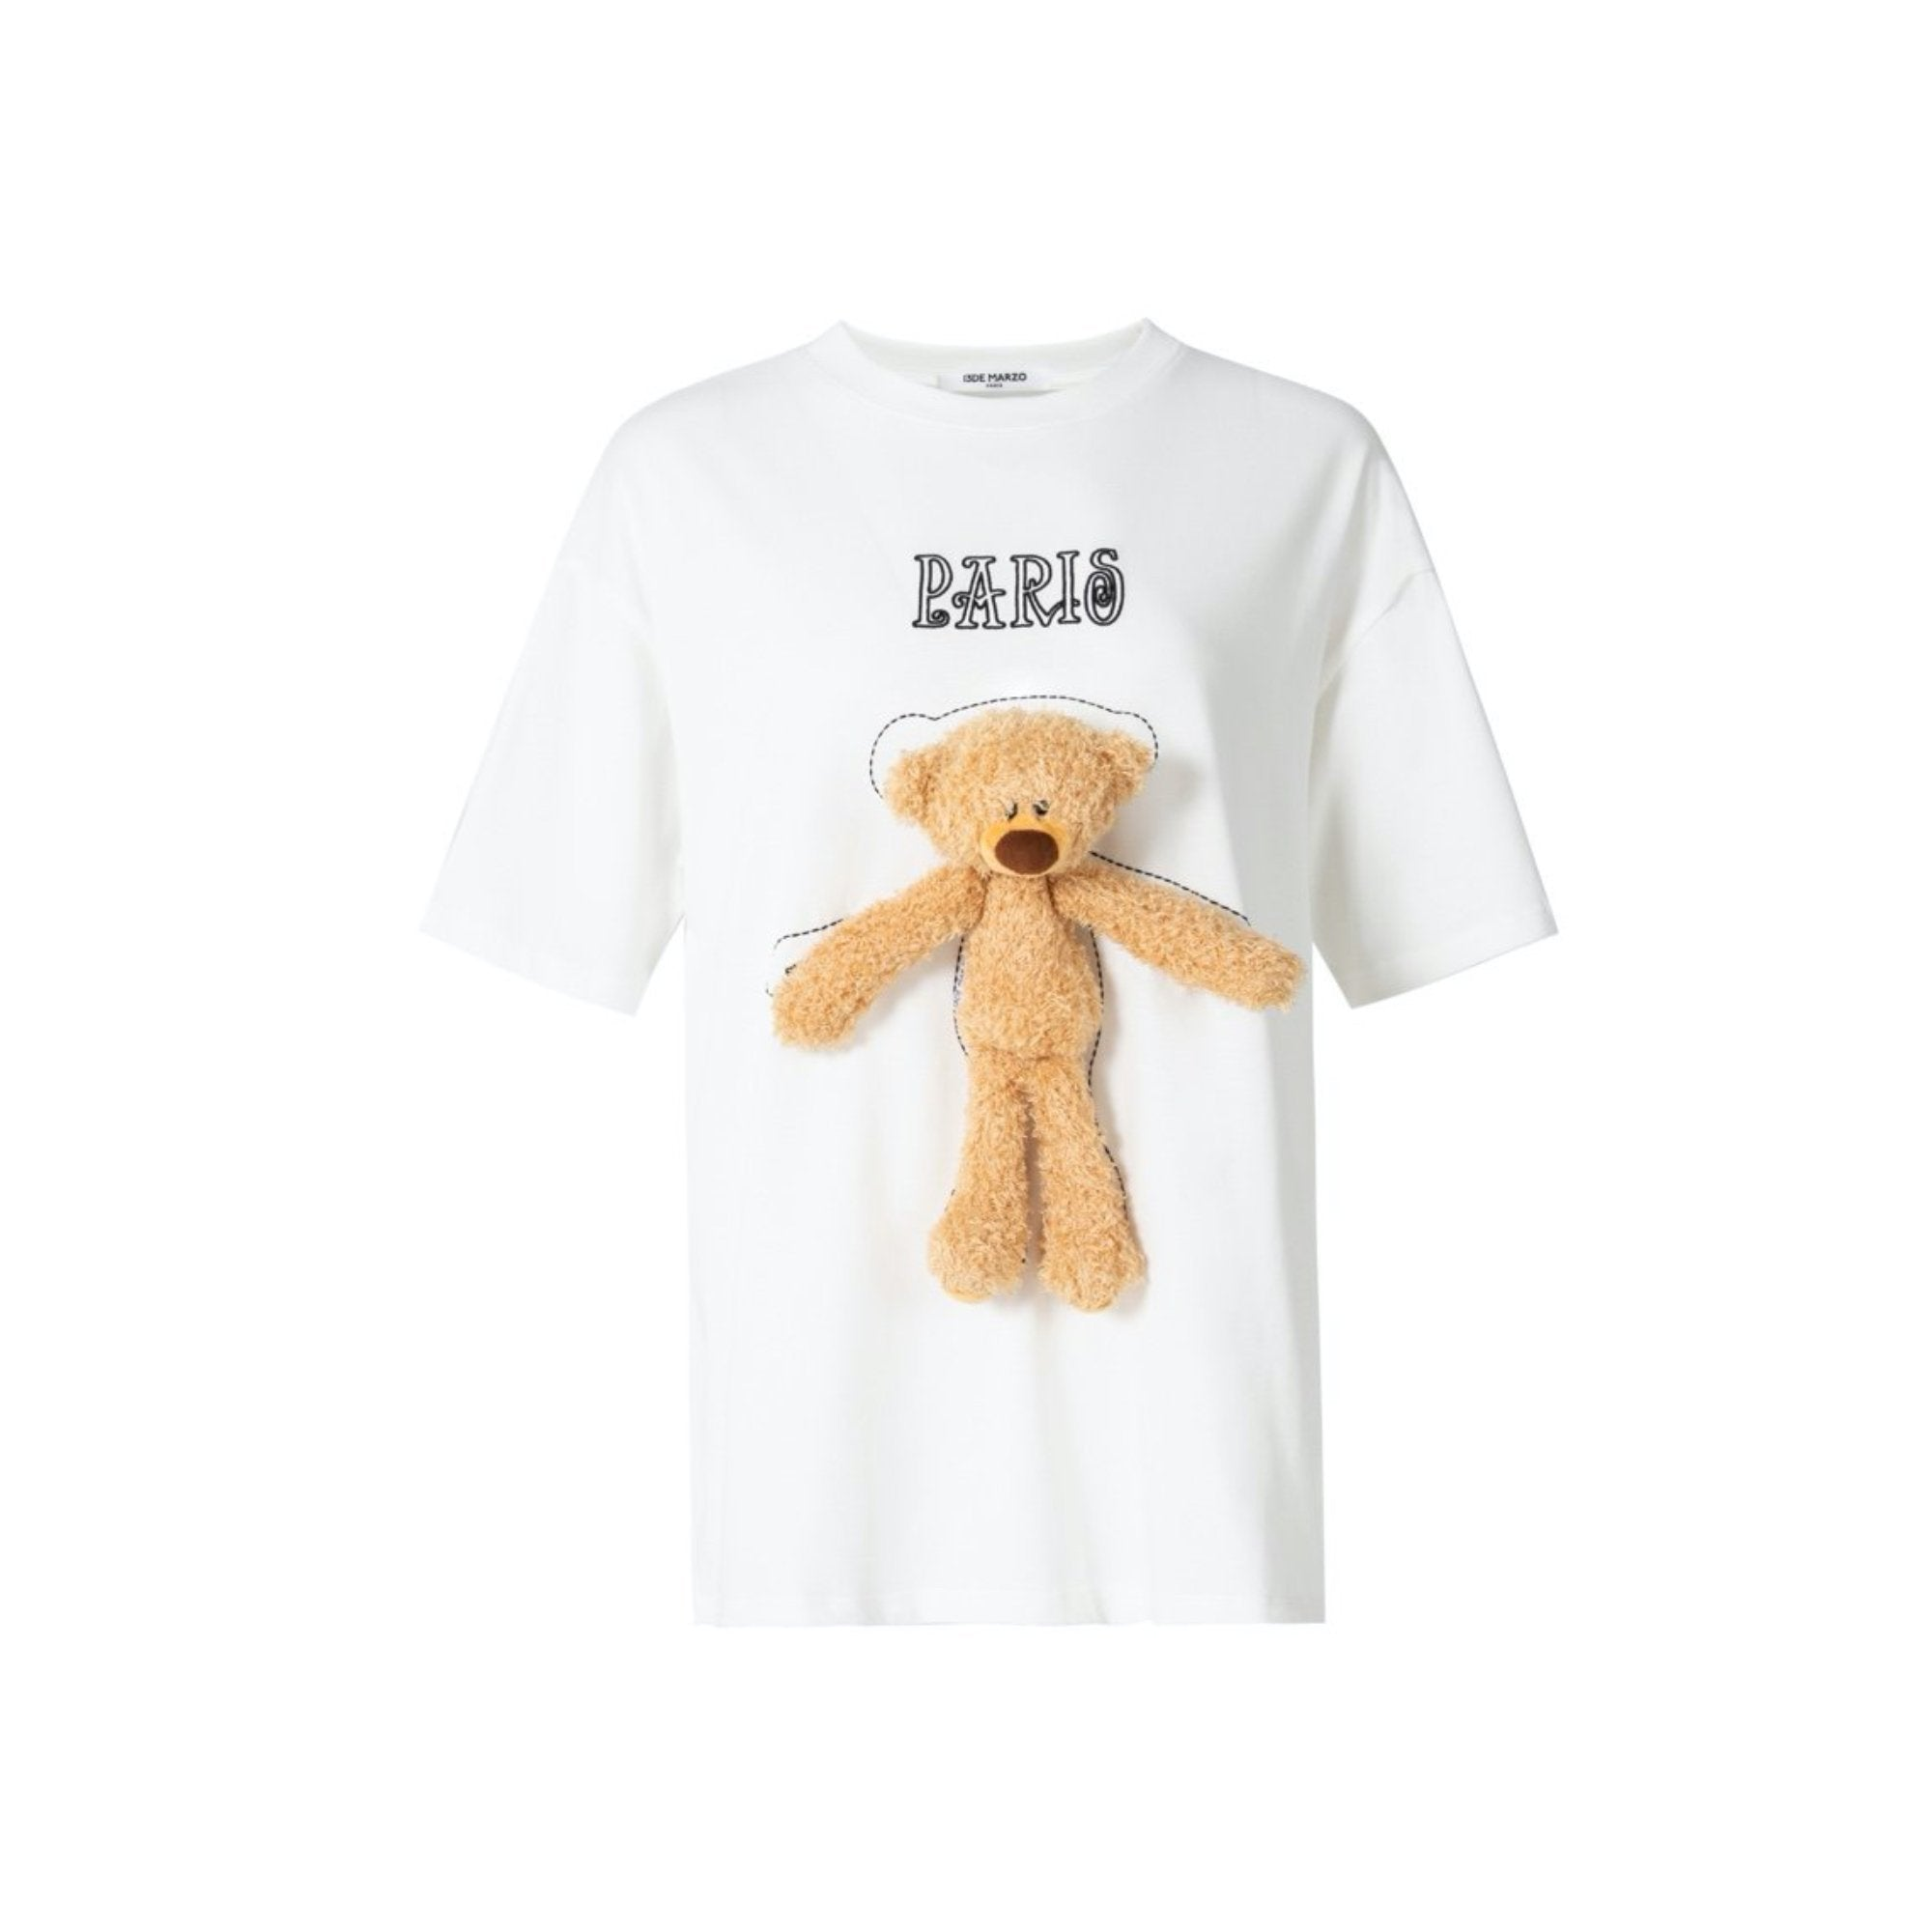 13 DE MARZO Tiny Teddy Bear Tee White | MADA IN CHINA